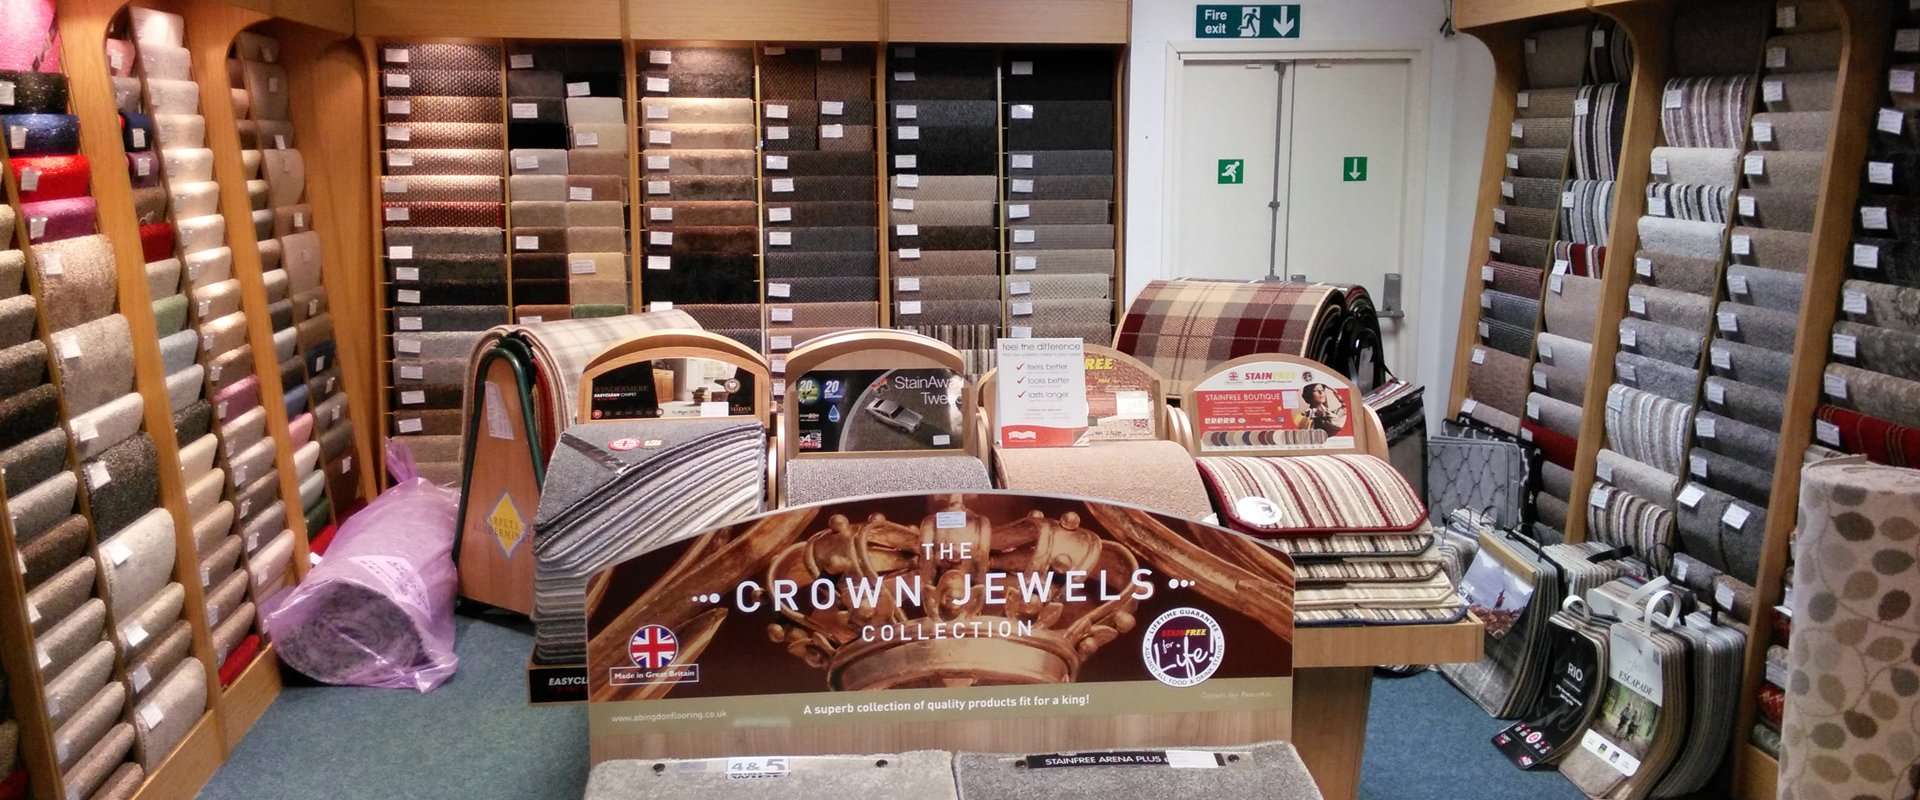 CROWN JEWELS COLLECTION